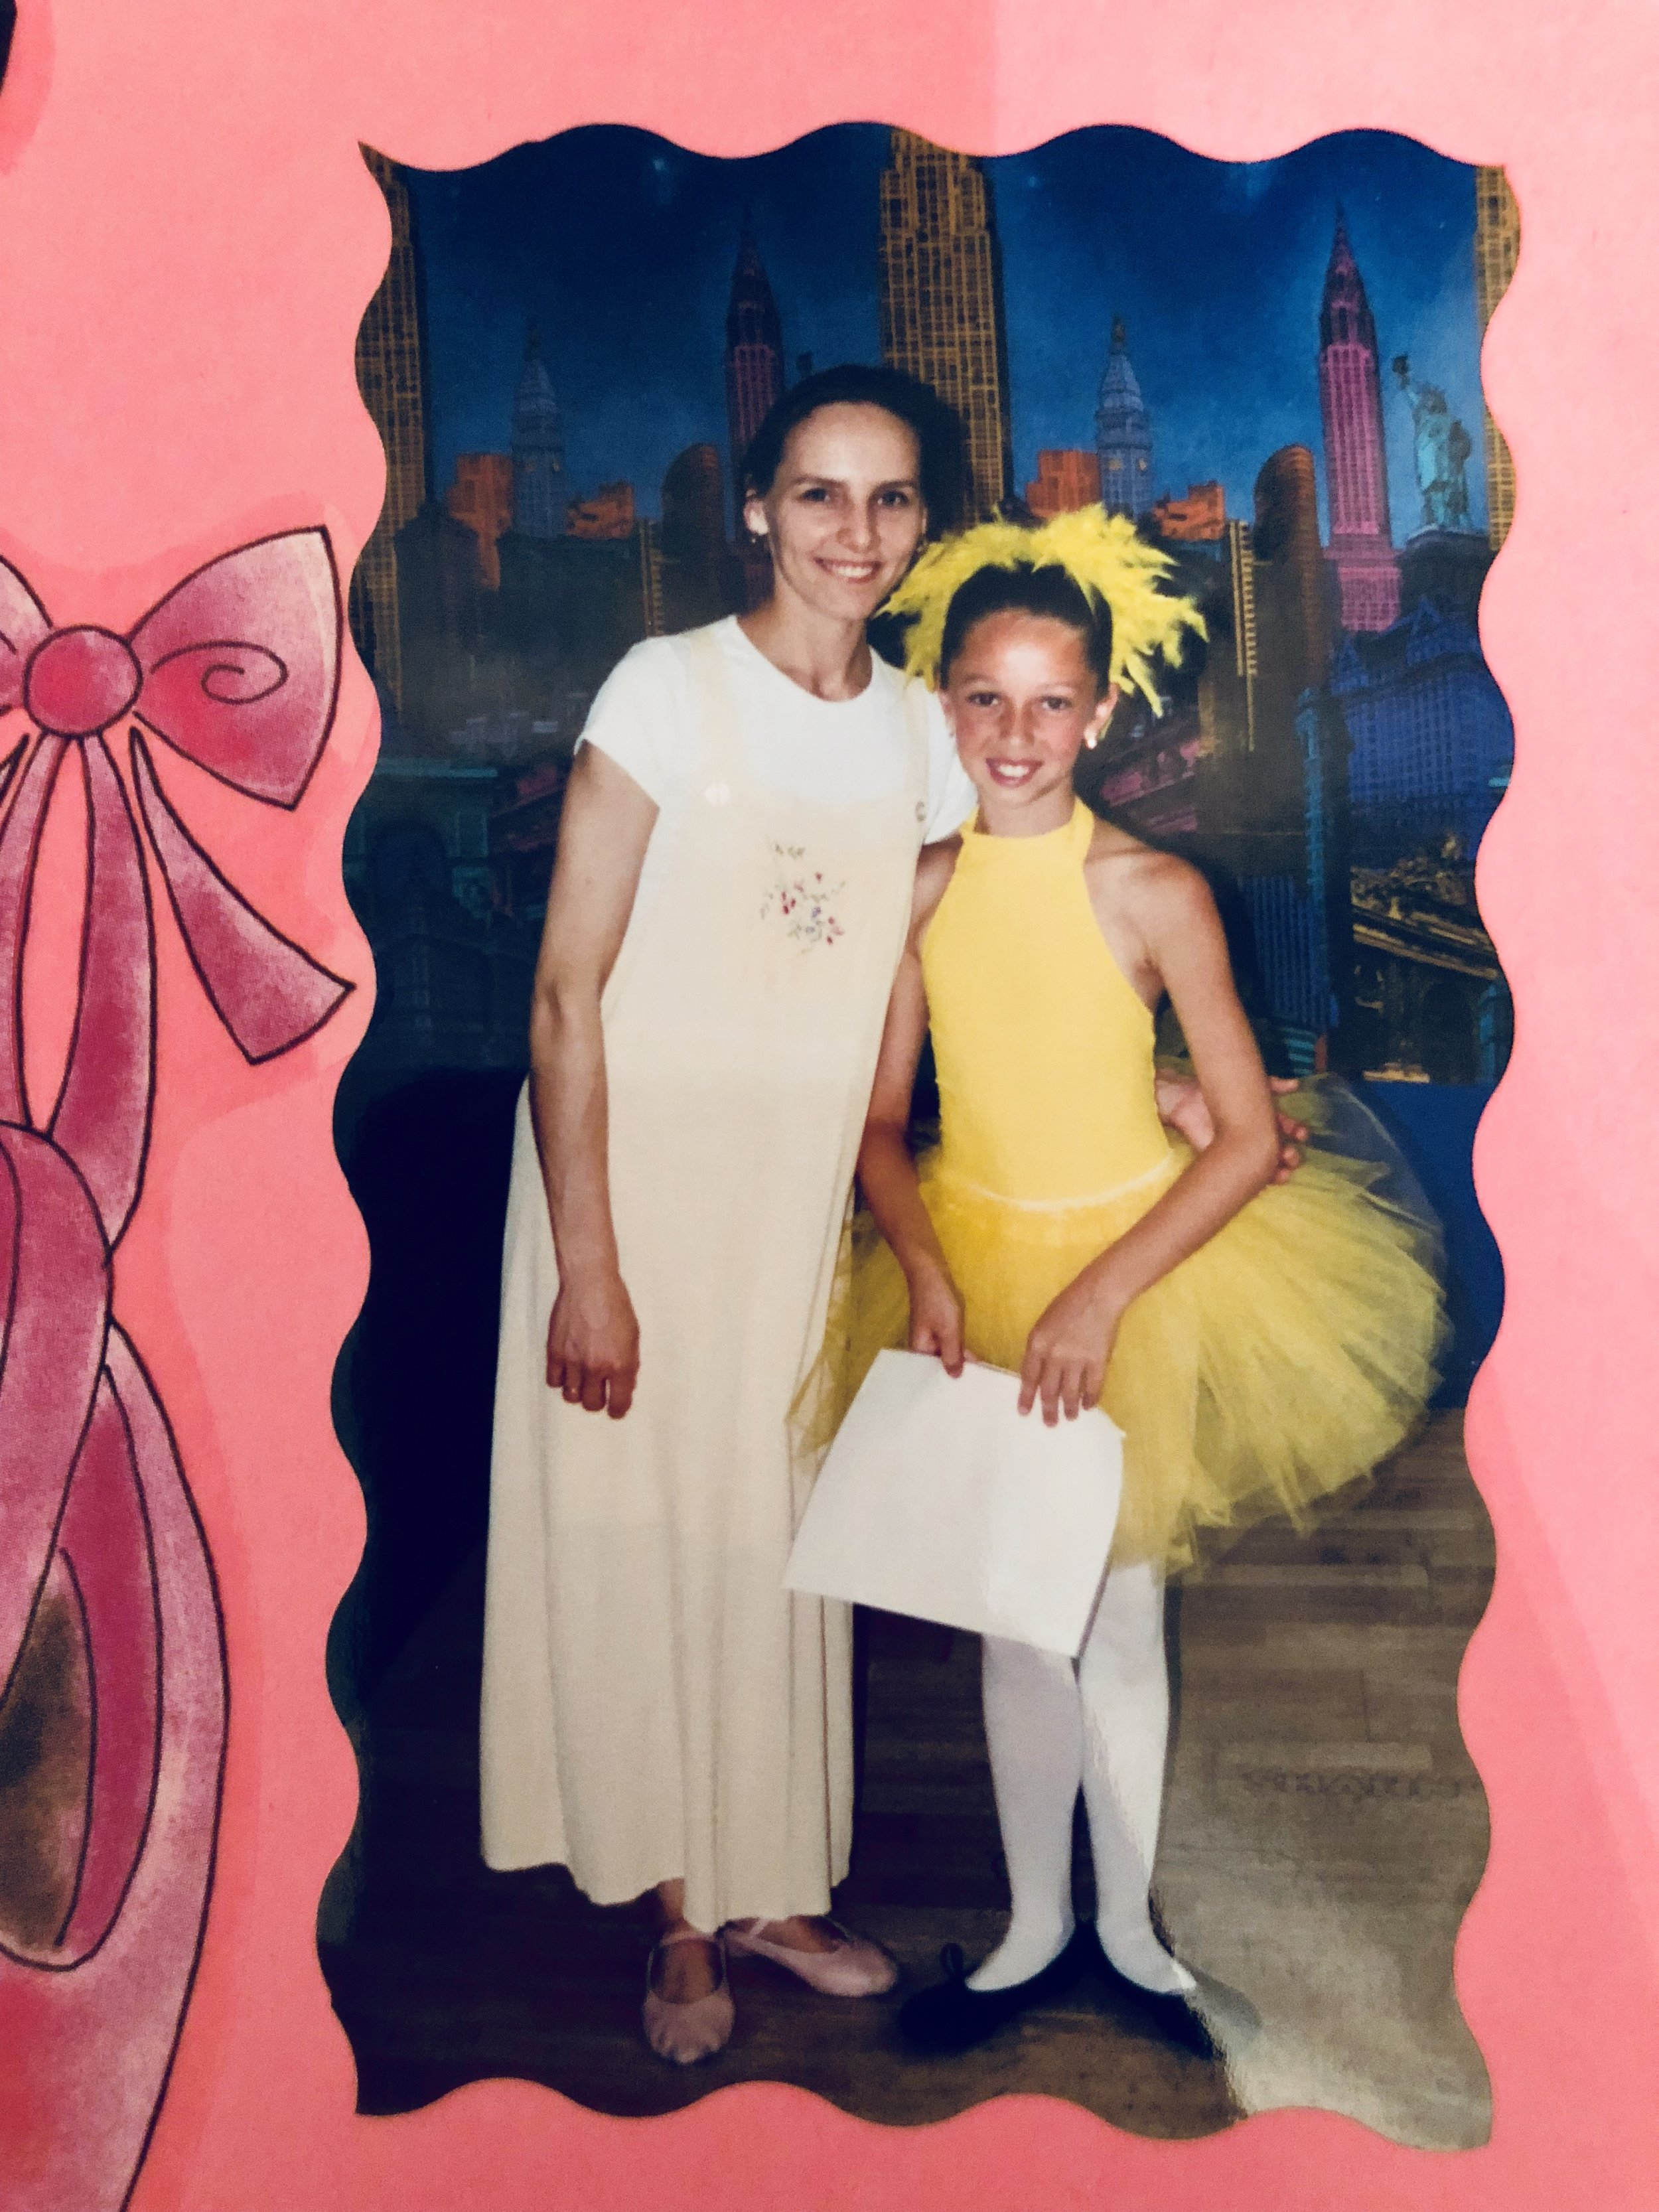 - Picking up ballet again at 8. My mom took me to a local studio called Dance Emotions. Thankfully, that is where I met my most influential ballet teacher, Hannah Karacic.